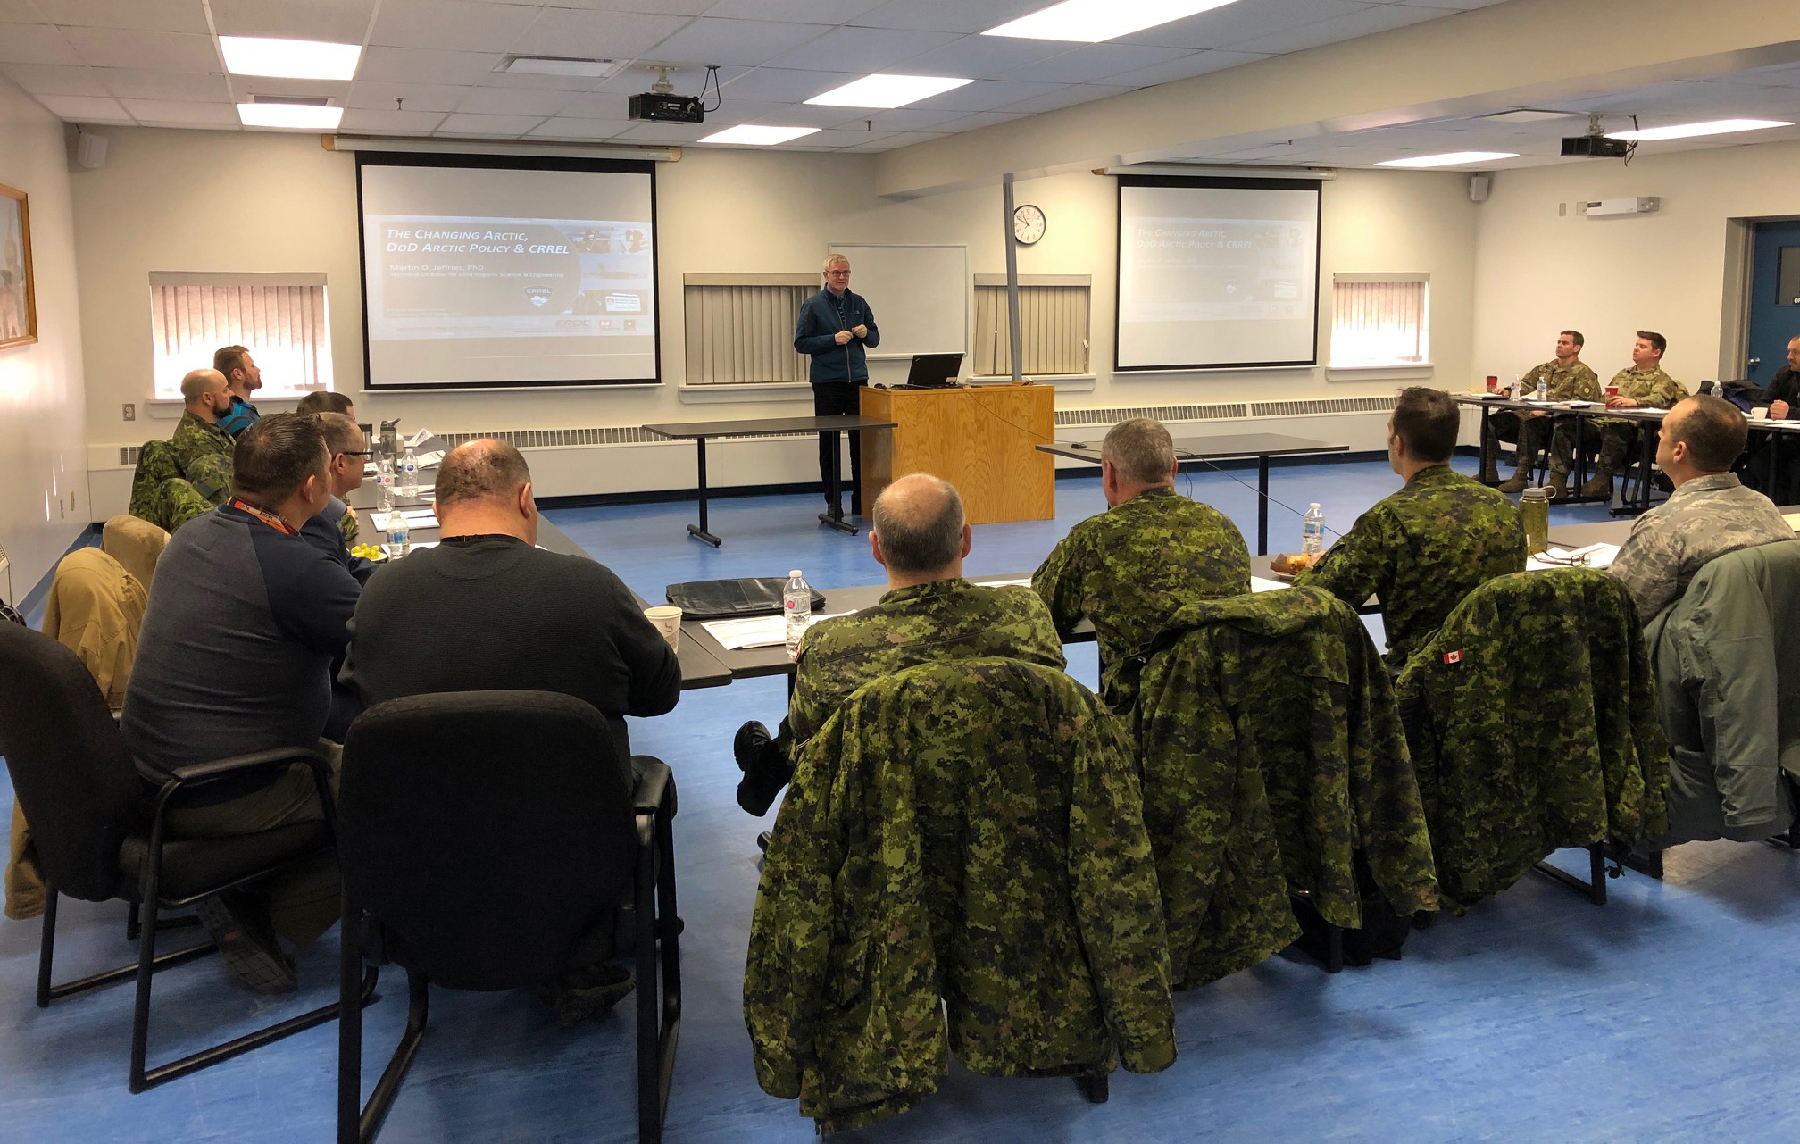 Dr. Martin Jeffries, from the Cold Regions Research and Engineering Laboratory, presents some of his research and observations to members of the Arctic Air Power Seminar, (3rd edition), at 5 Wing Goose Bay, Newfoundland and Labrador on January 21, 2020. PHOTO: Submitted